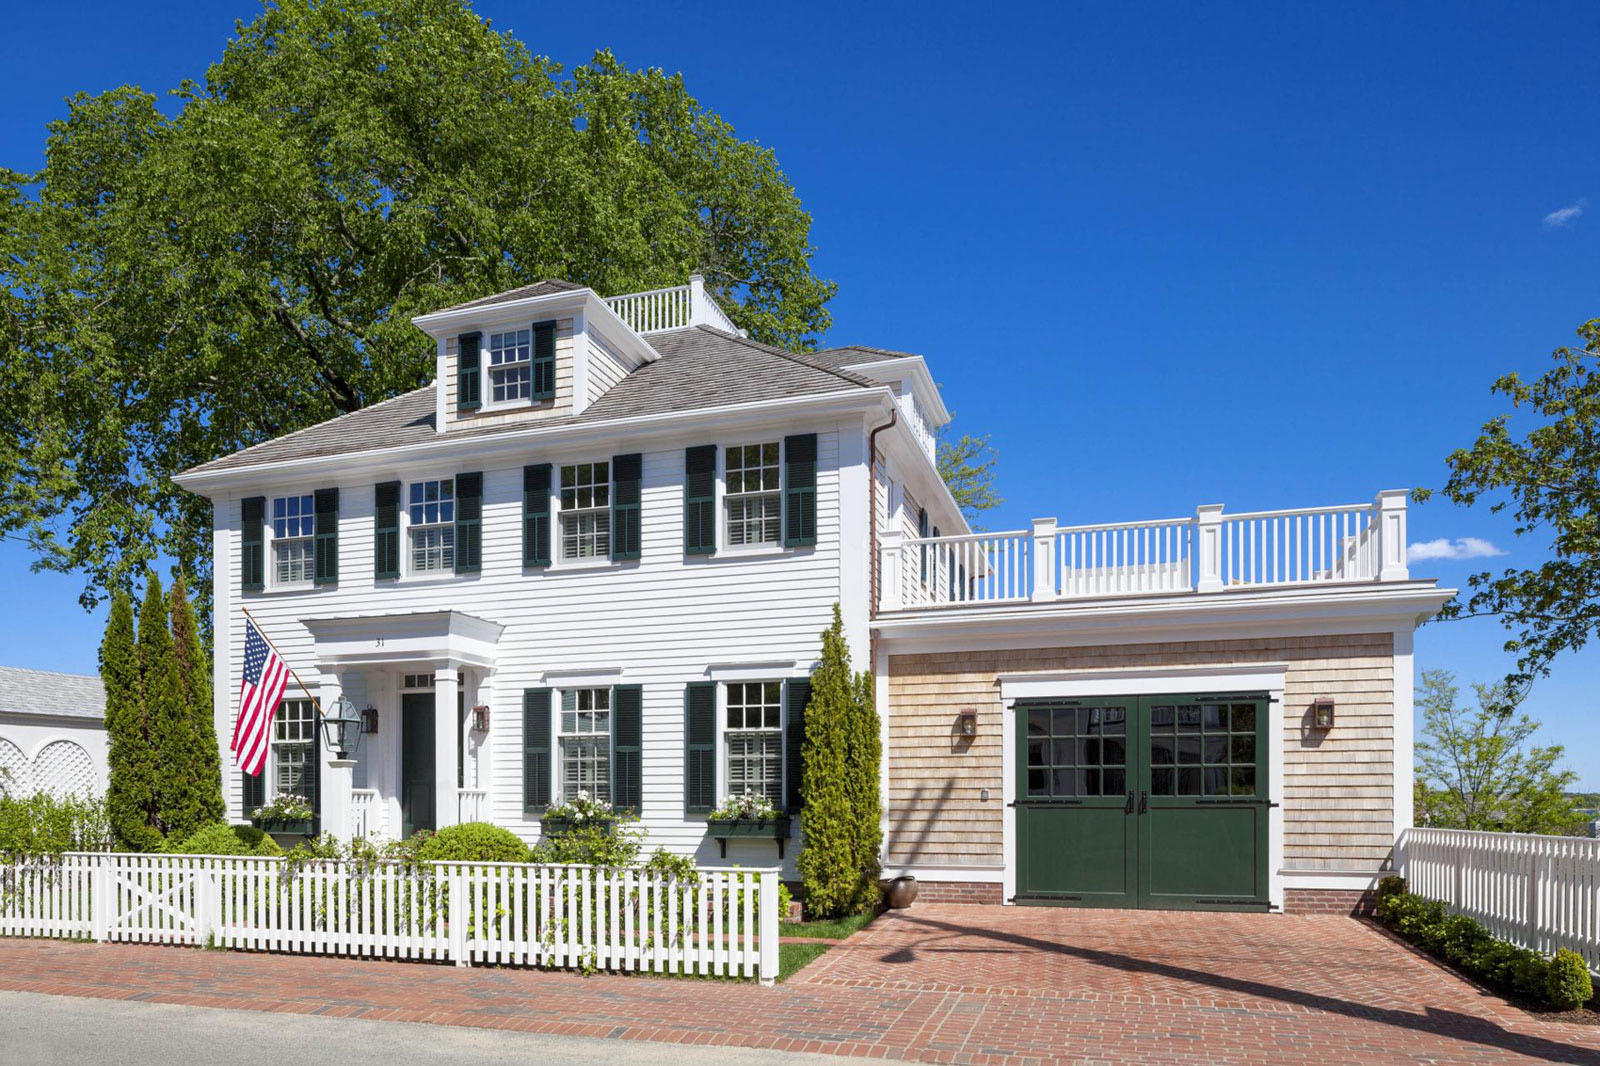 Family Home With New England Colonial Architecture On